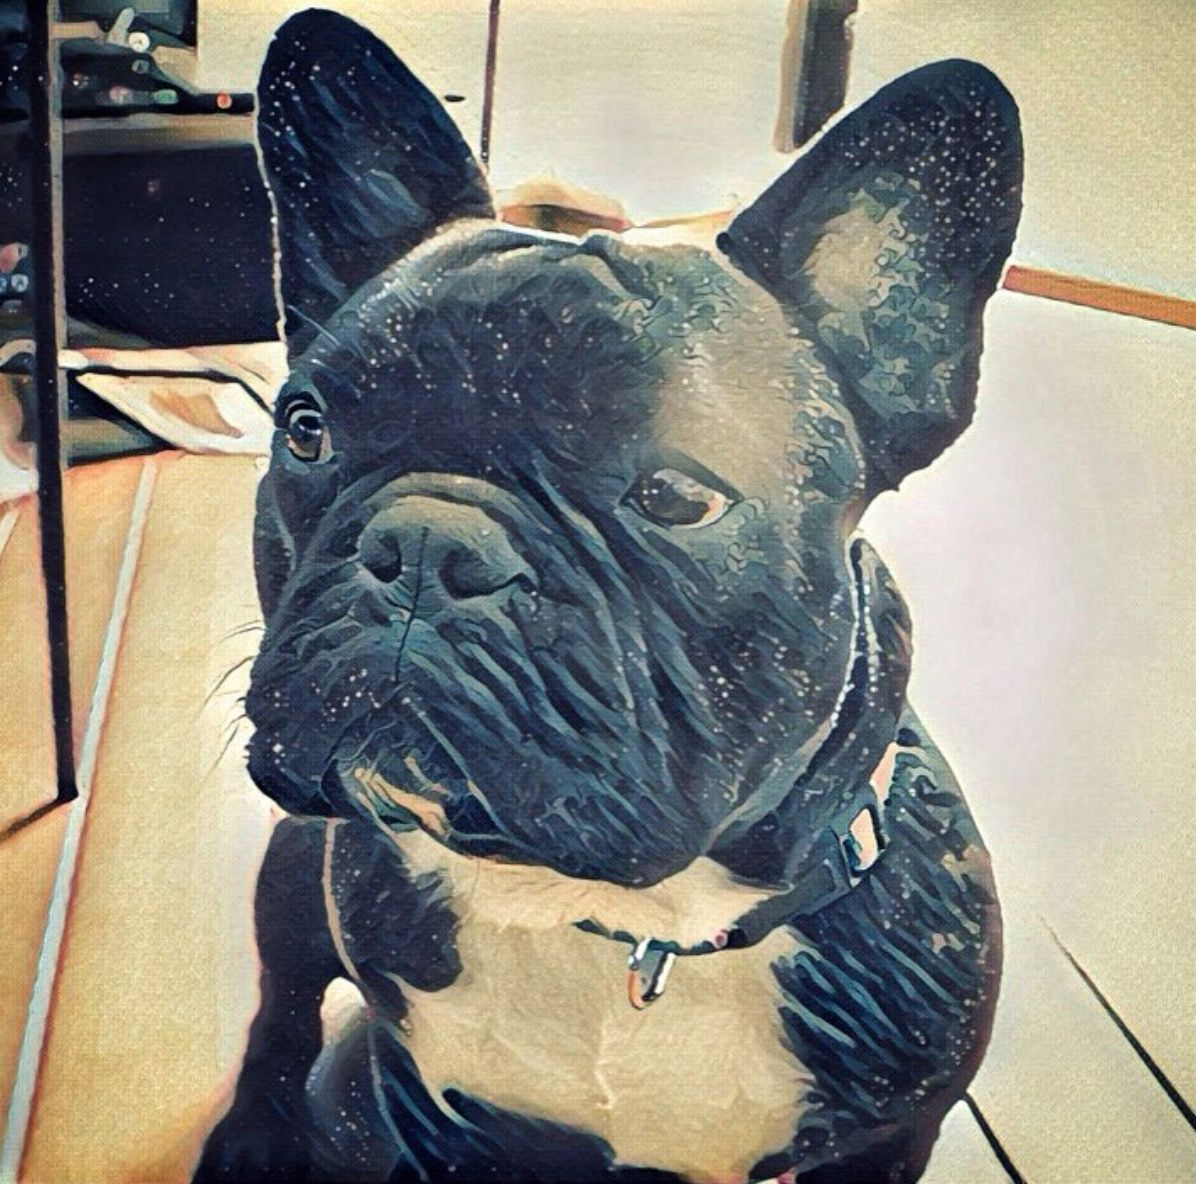 Este Soy Yo Zizou Un Bulldog Frances Grande Frenchbulldog Frenchie Dog Bulldog Bulldog Animals French Bulldog